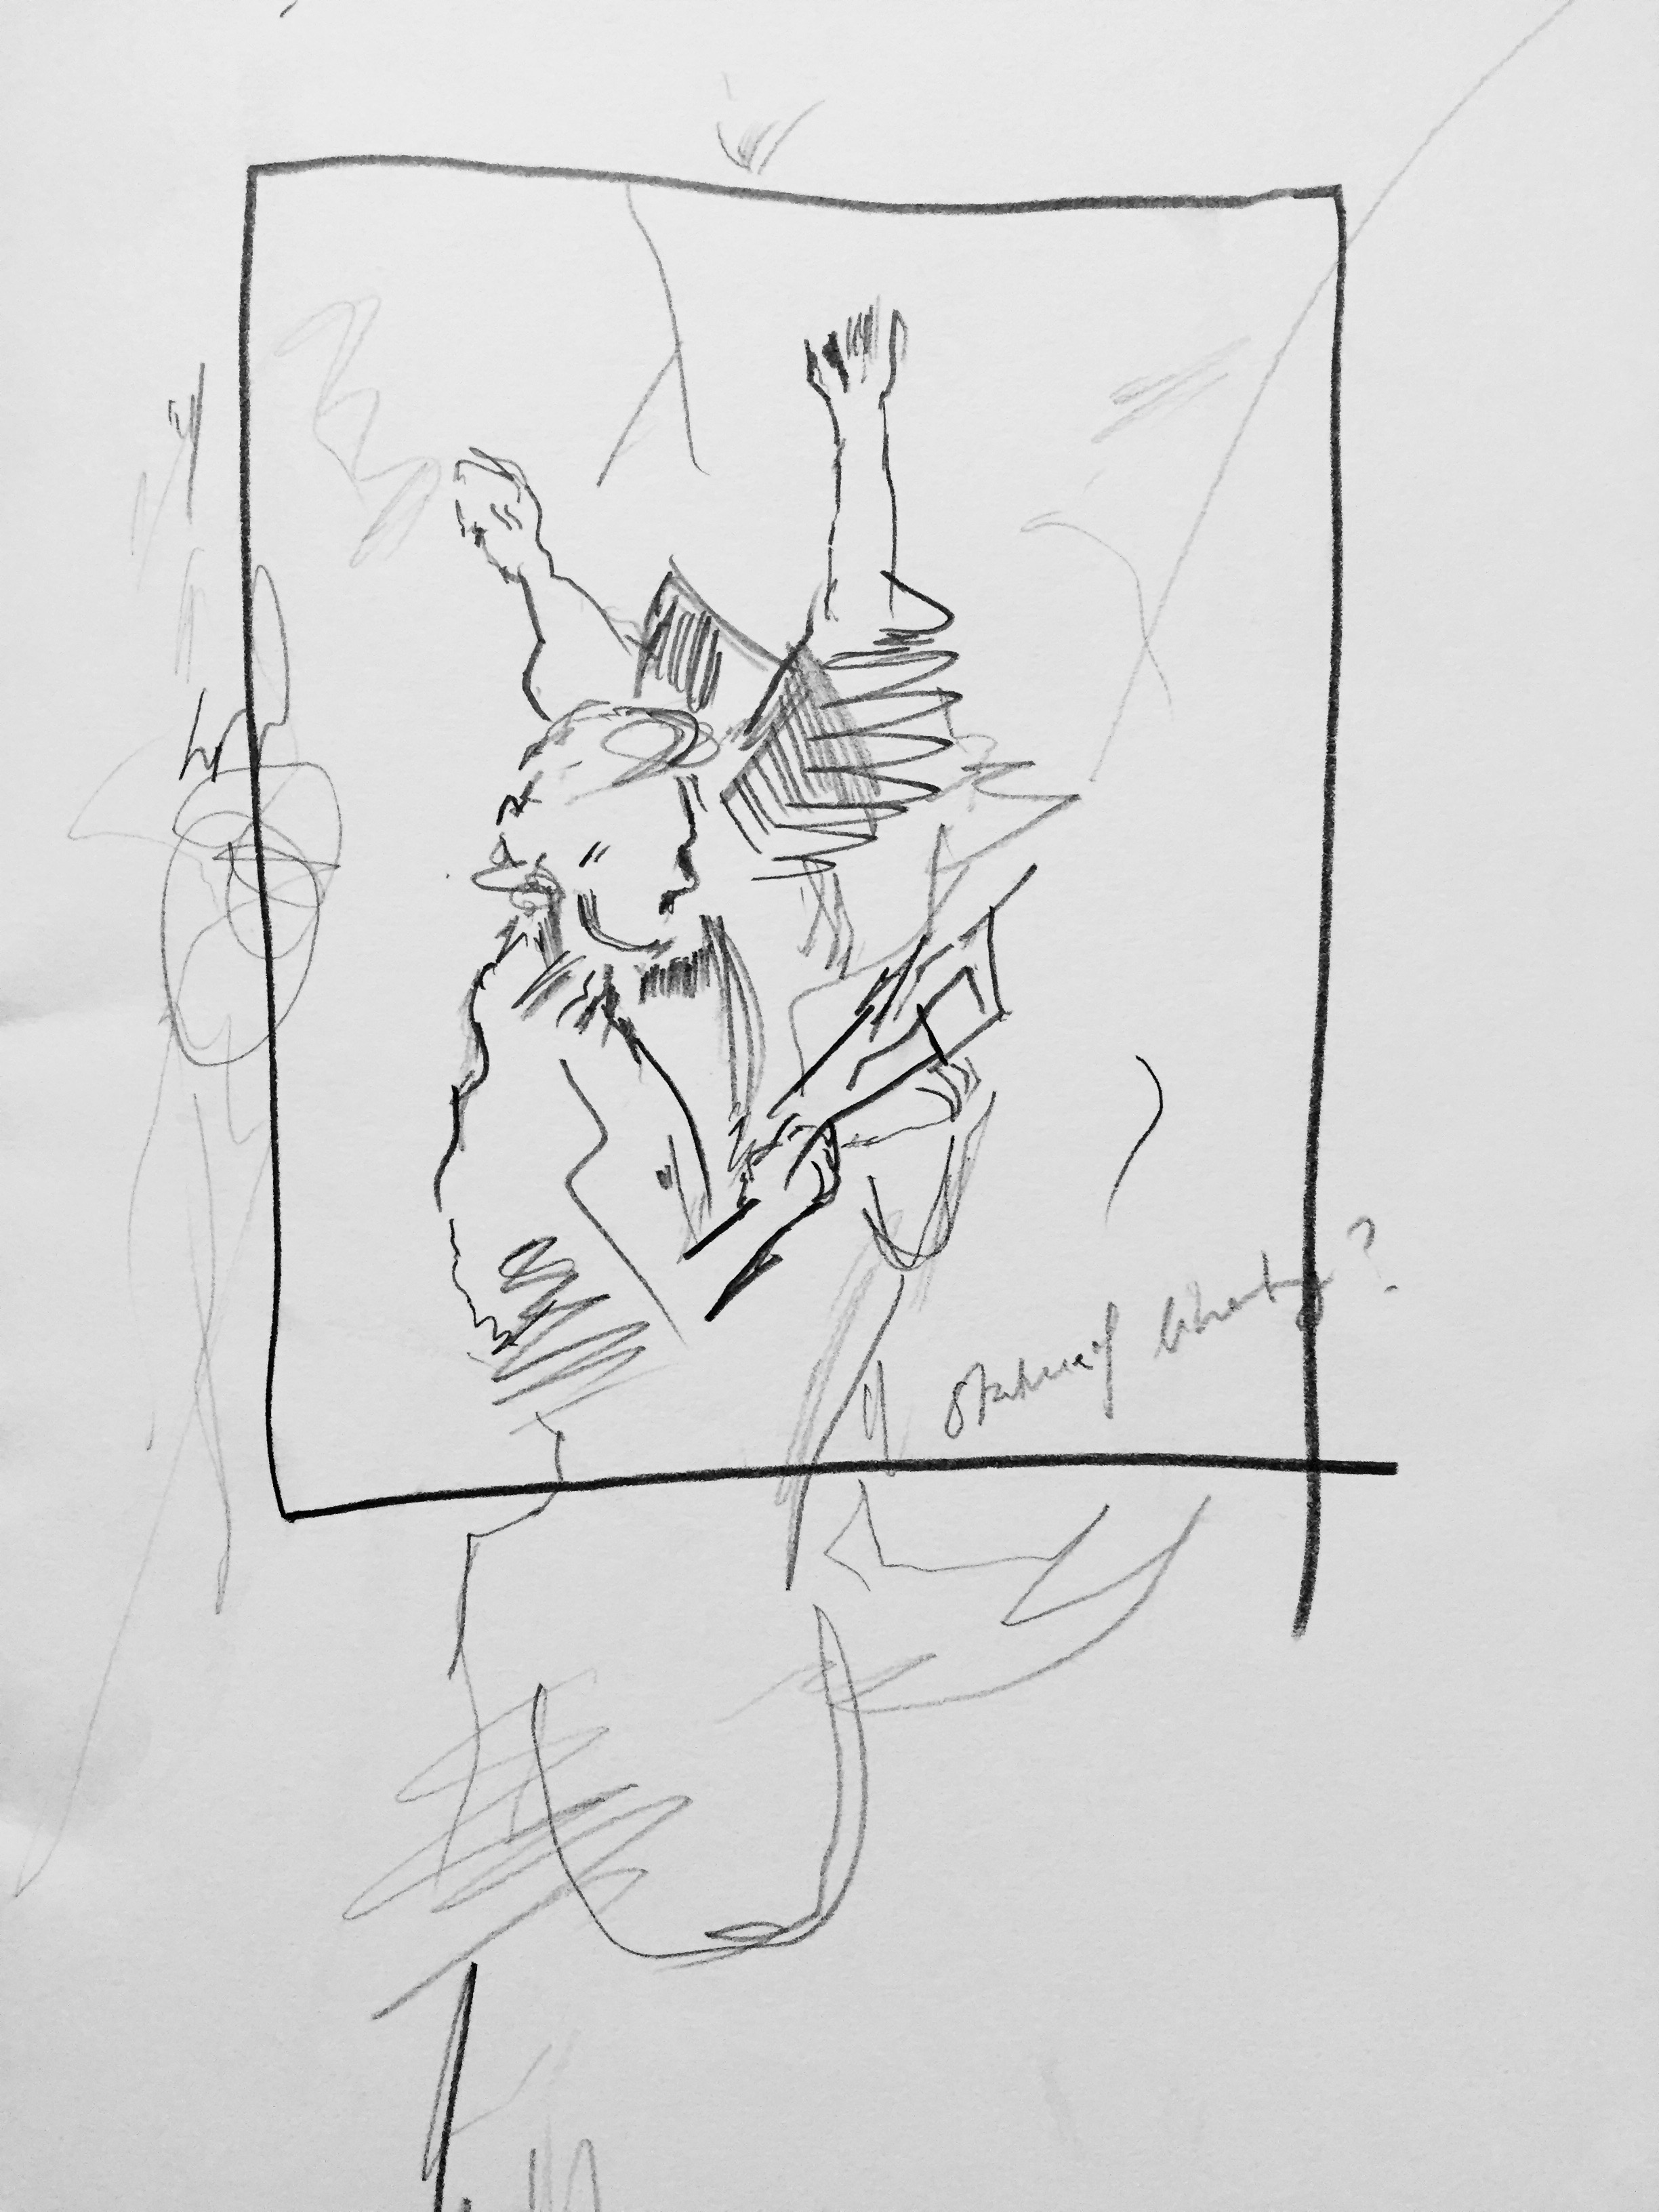 woman on tube (Statue of Liberty)